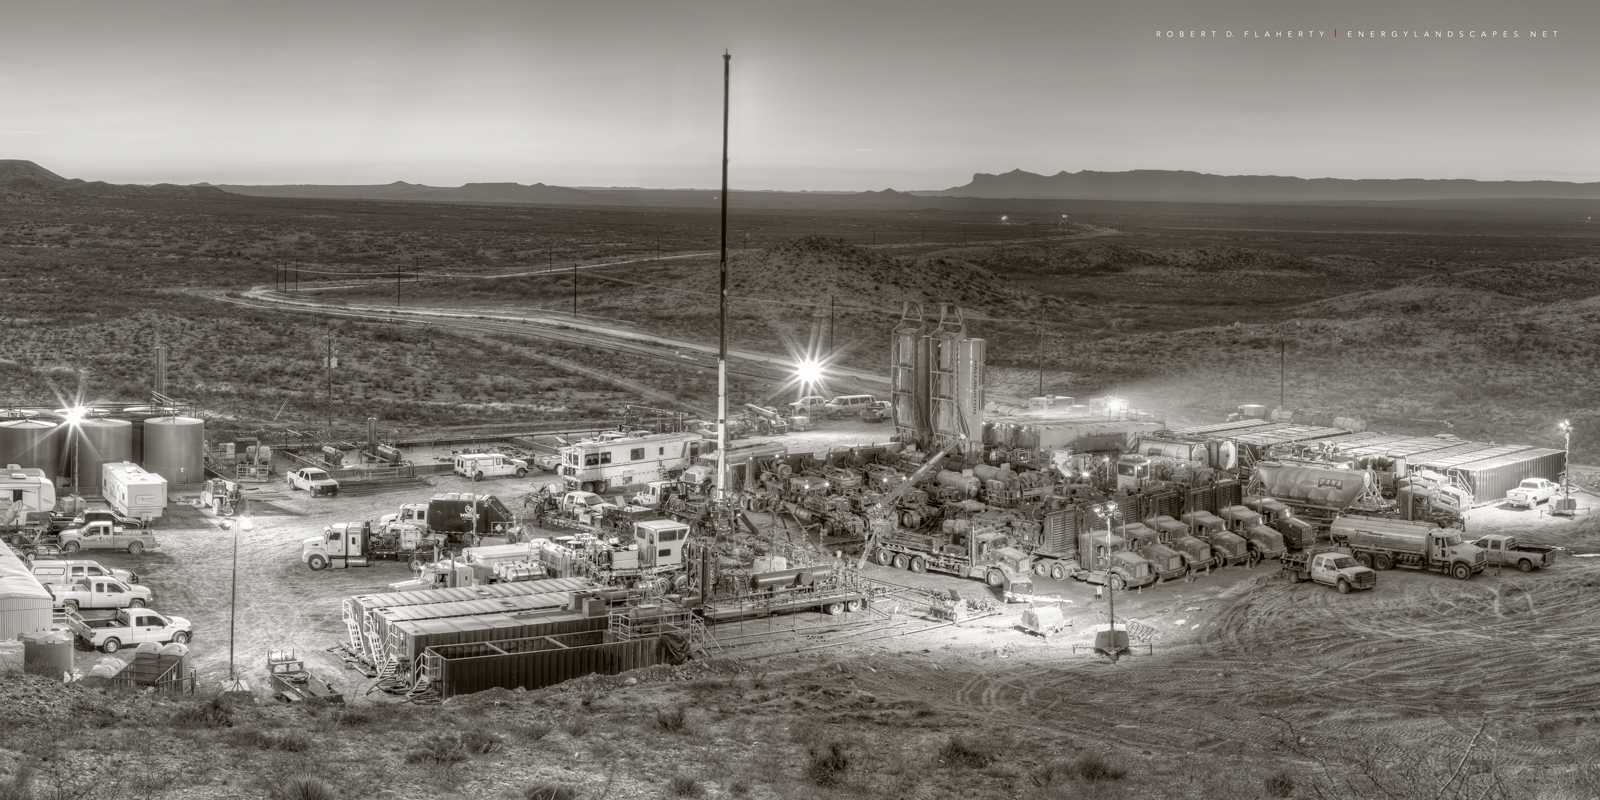 Frac, Panorama, Delaware Basin, Black & White, sepia, mural, high resolution, large format print, pencil drawing, Winter, Guadalupe Pass, detailed photograph, photograph, Composite photograph, fine ar